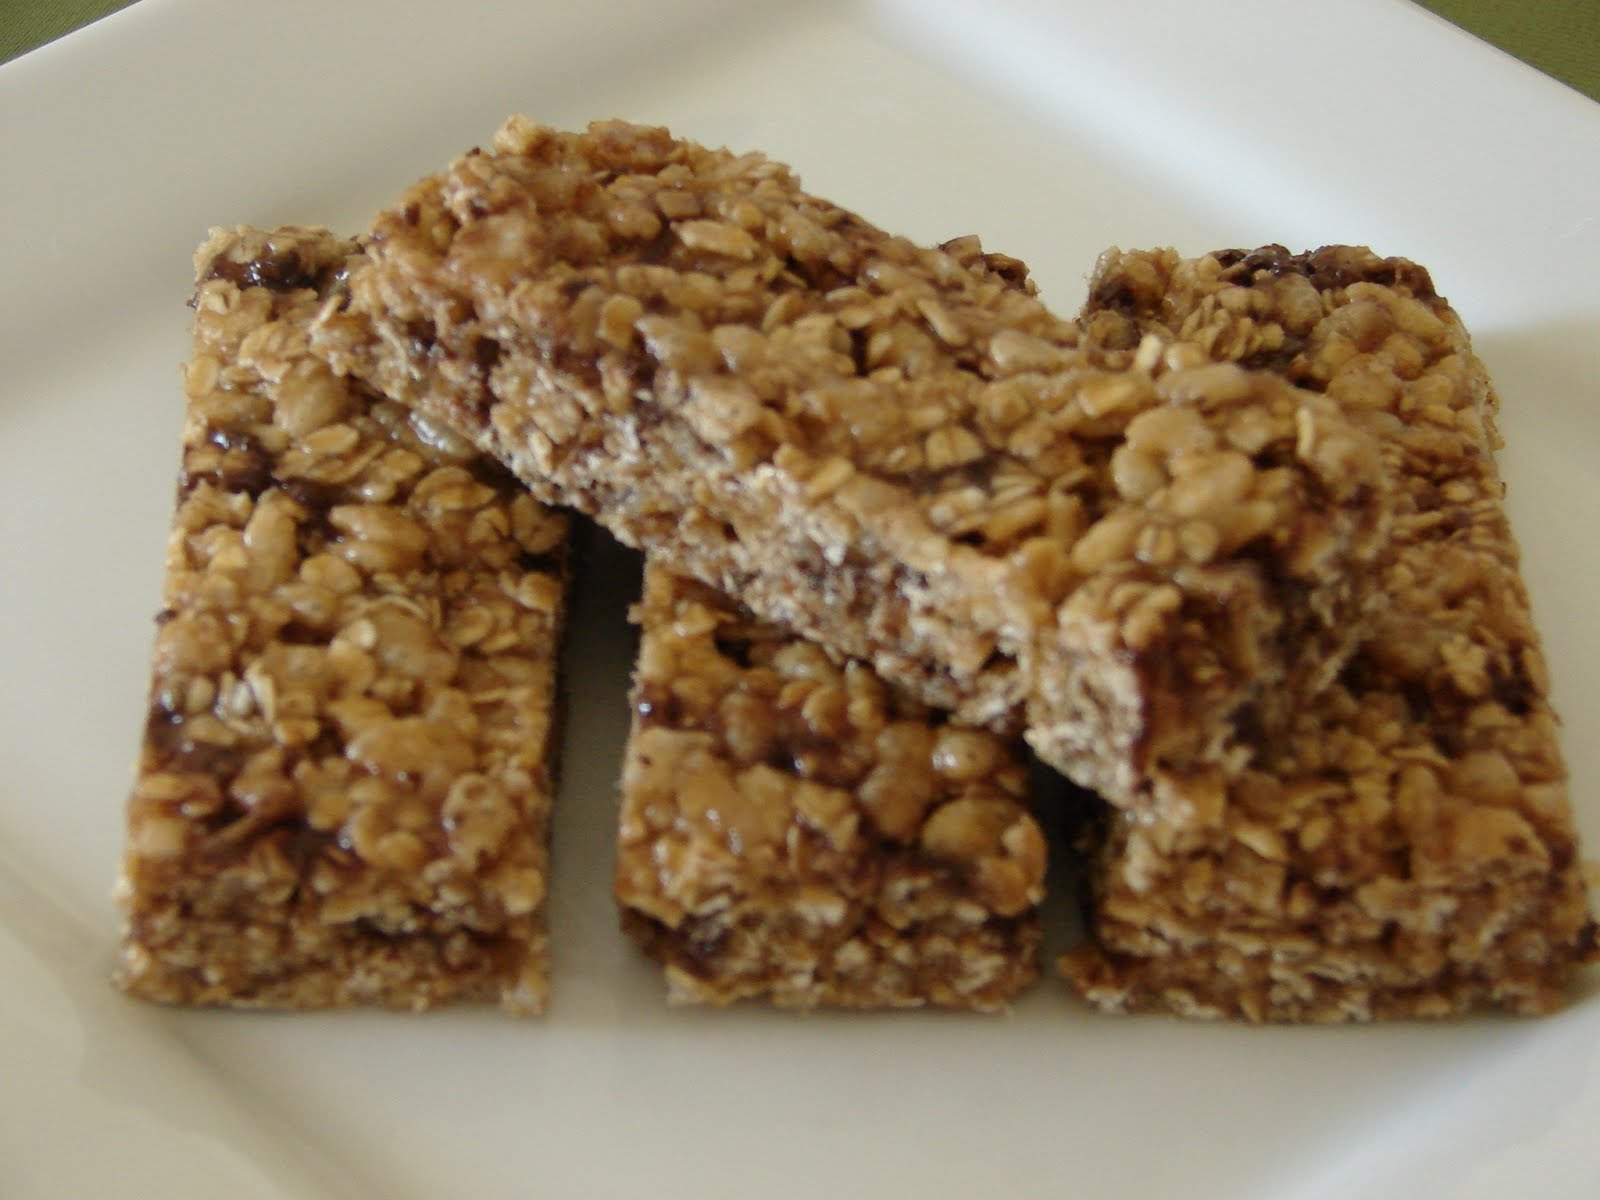 The Royal Cook: Chewy Chocolate Chip Granola Bars